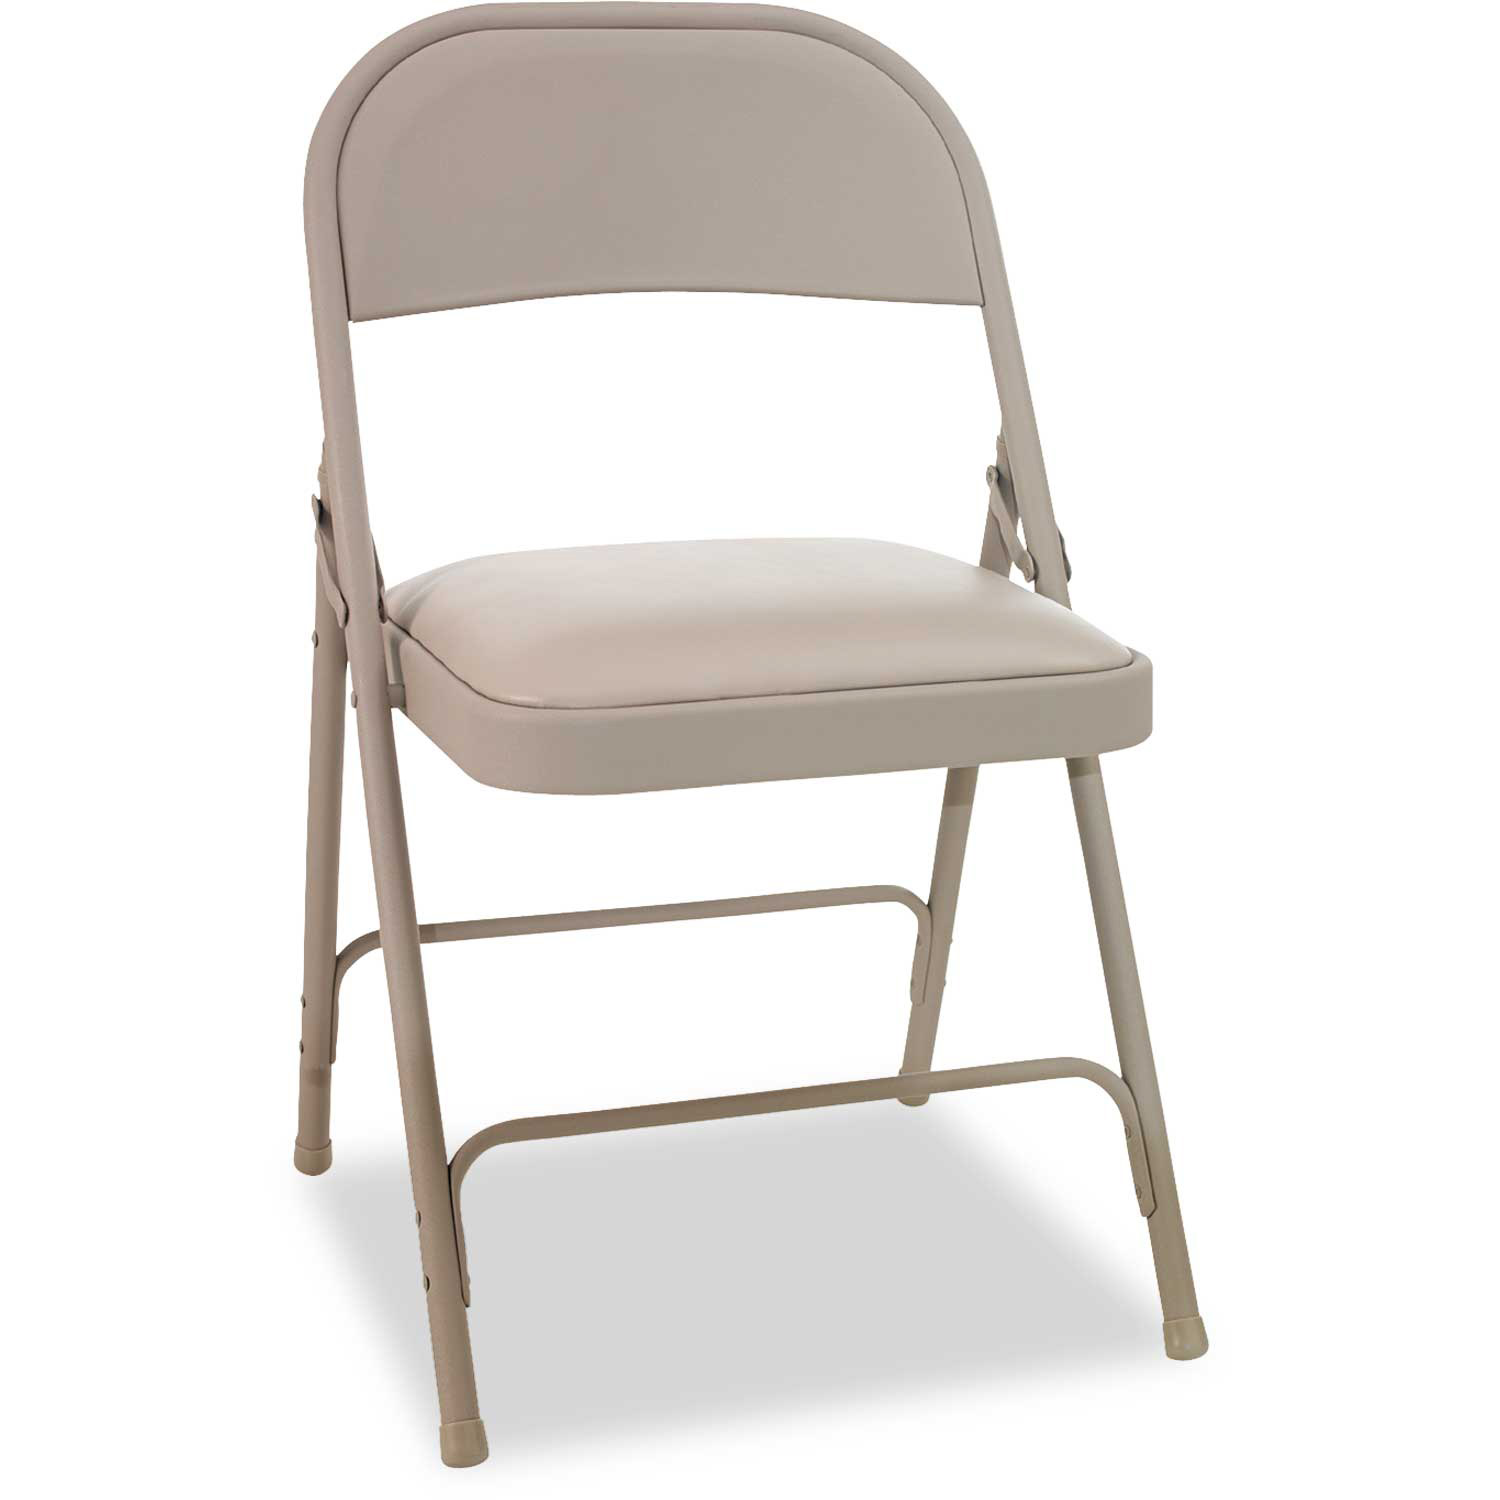 Alera Steel Folding Chair With Padded Seat Tan 4/Carton by